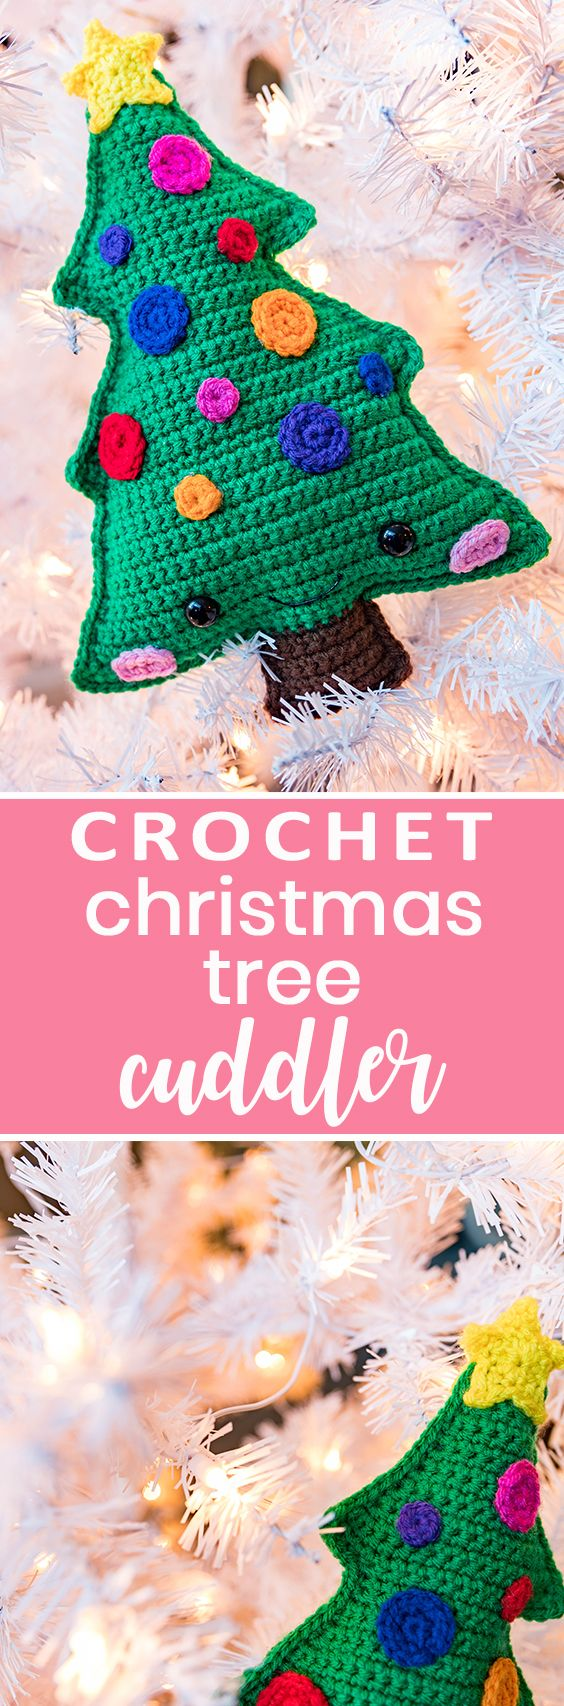 Crochet this quick and cute kawaii cuddler christmas tree for holiday gifts and decor! Free pattern